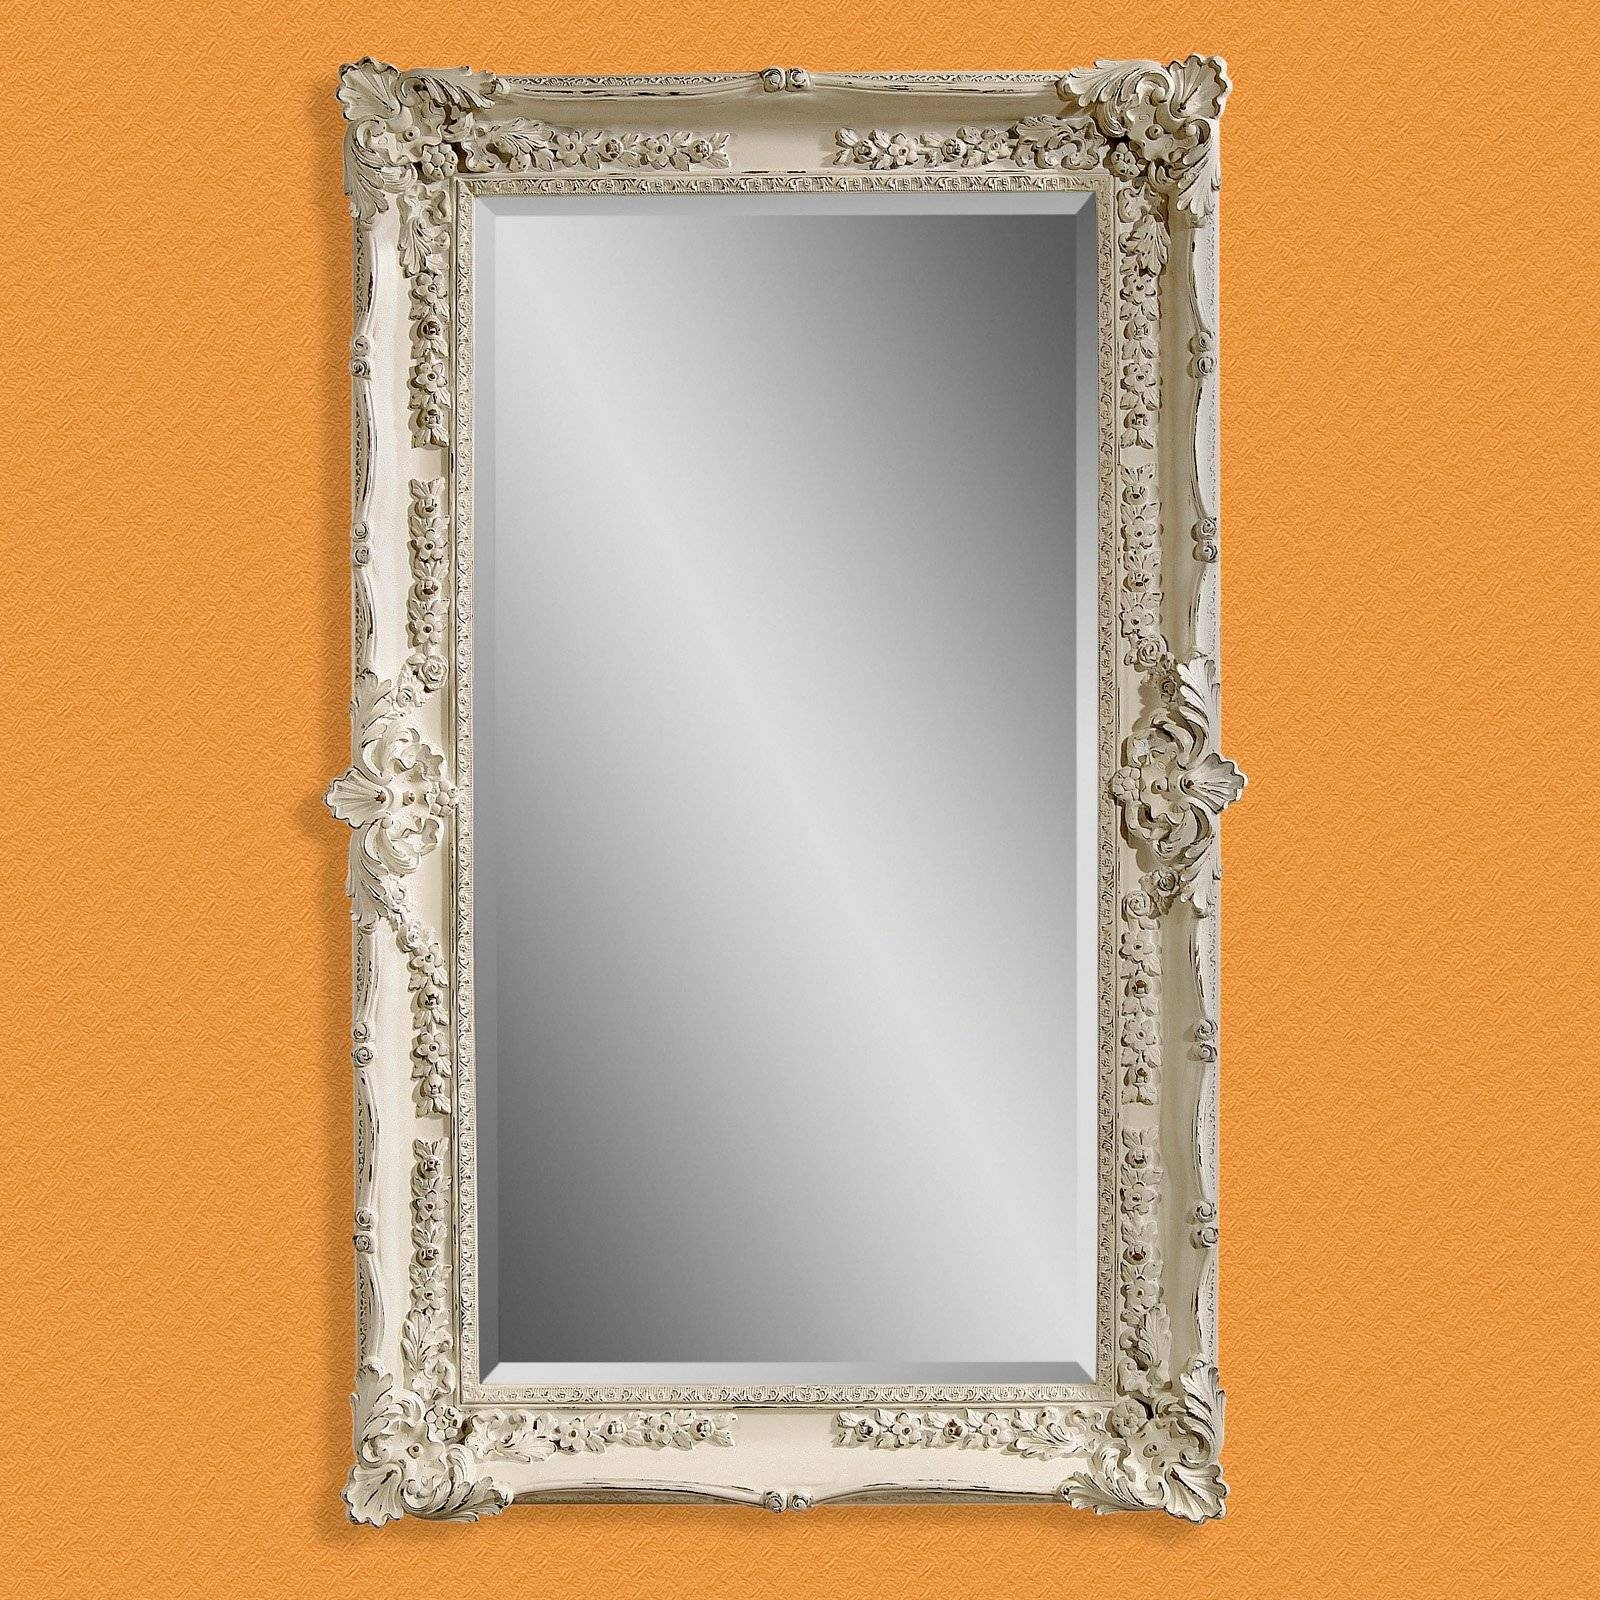 Antique White Wall / Leaning Floor Mirror - 43W X 69H In. | Hayneedle within Large Antique Wall Mirrors (Image 8 of 25)